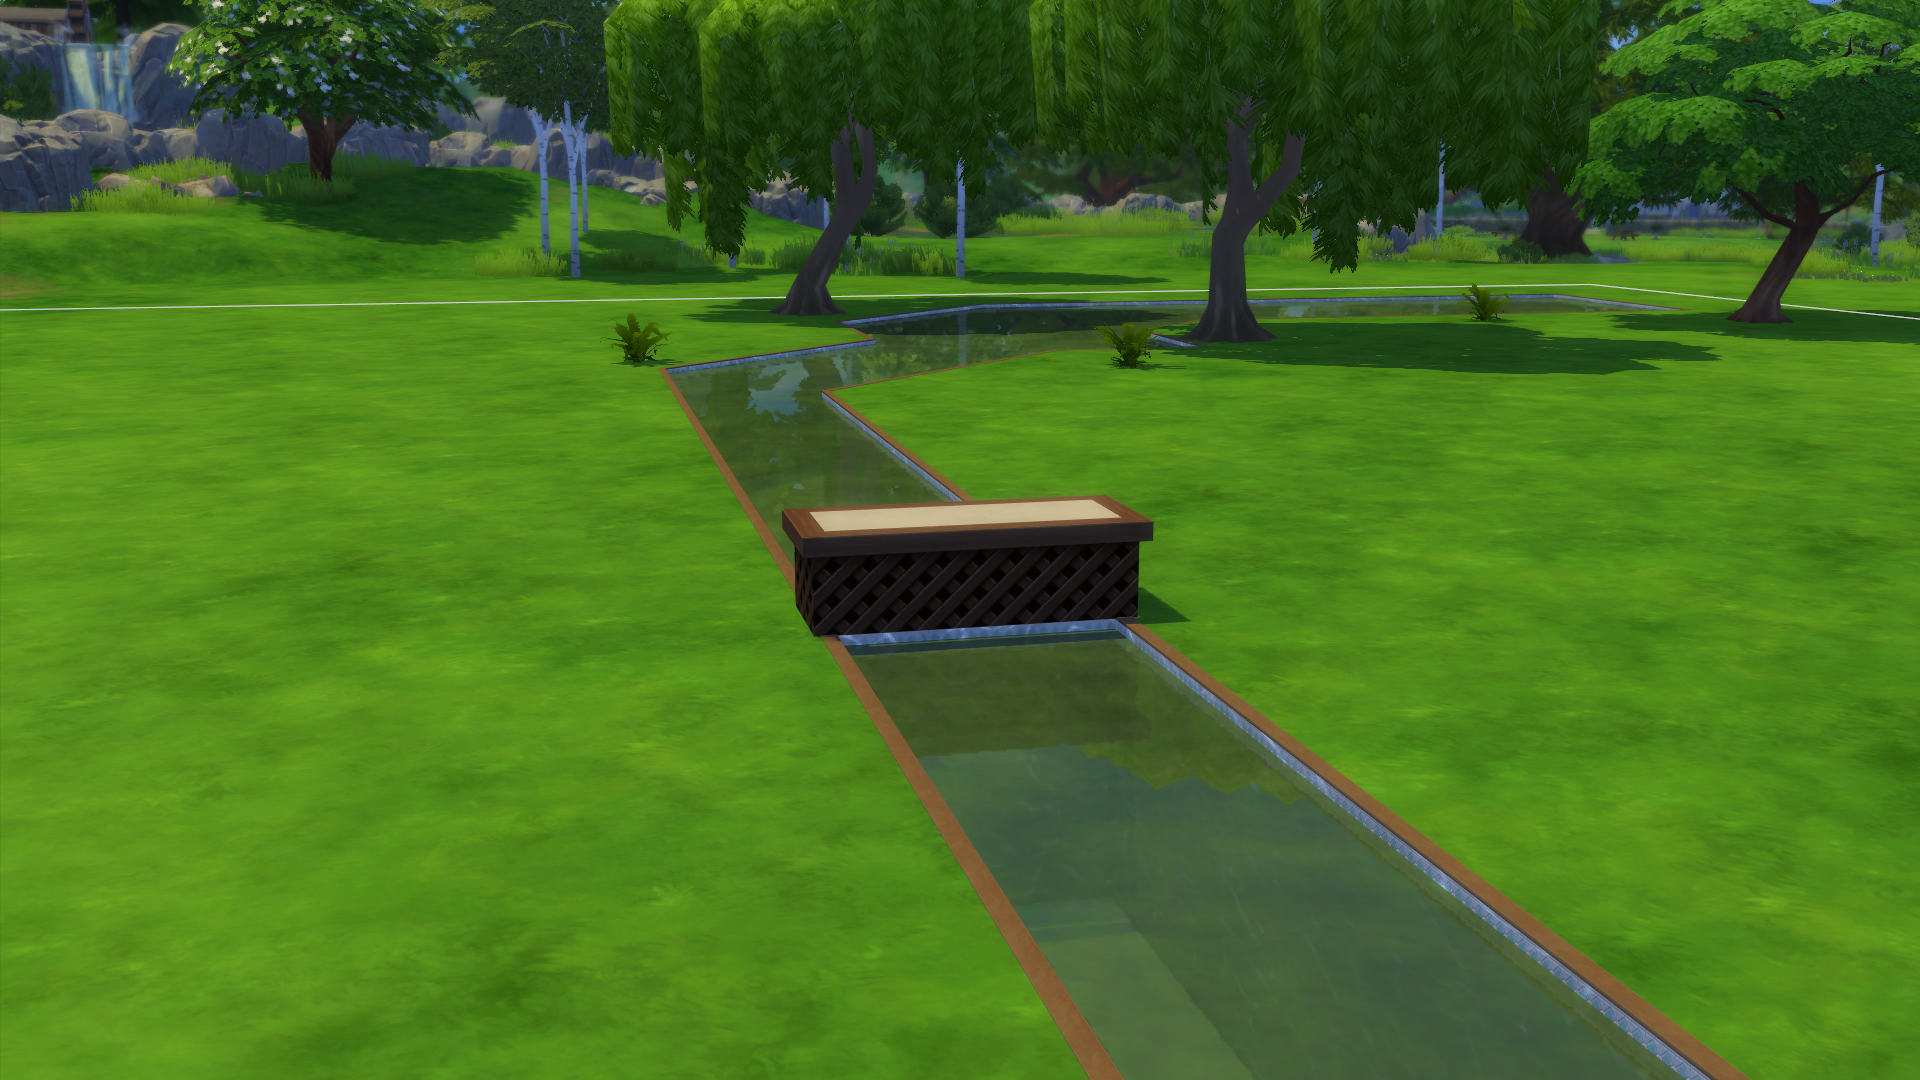 How To Create A Bridge In The Sims 4 Simsvip